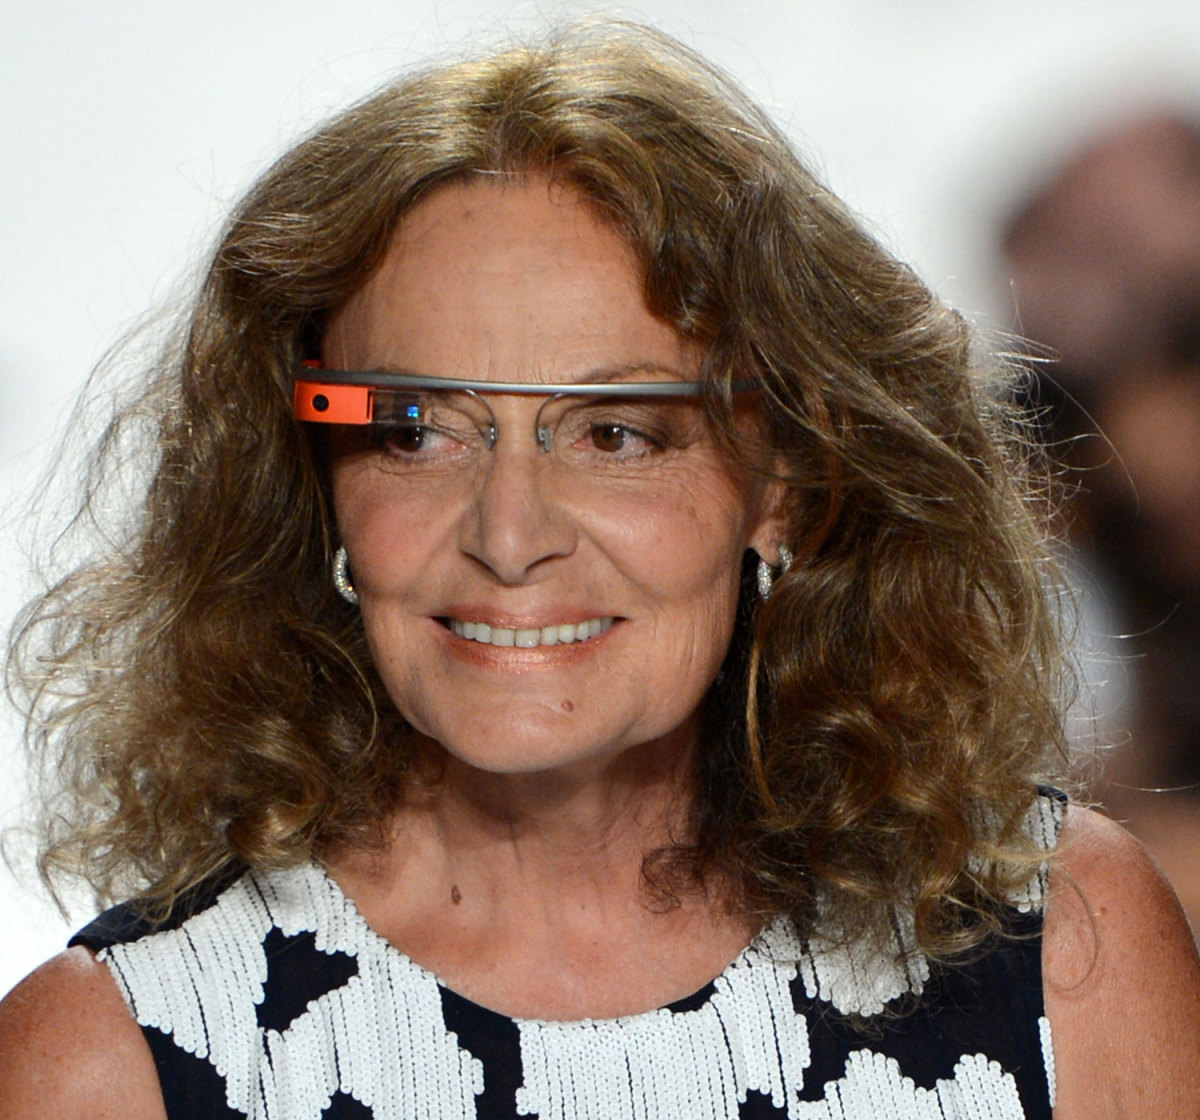 Diane Von Furstenberg Google Glass Photo